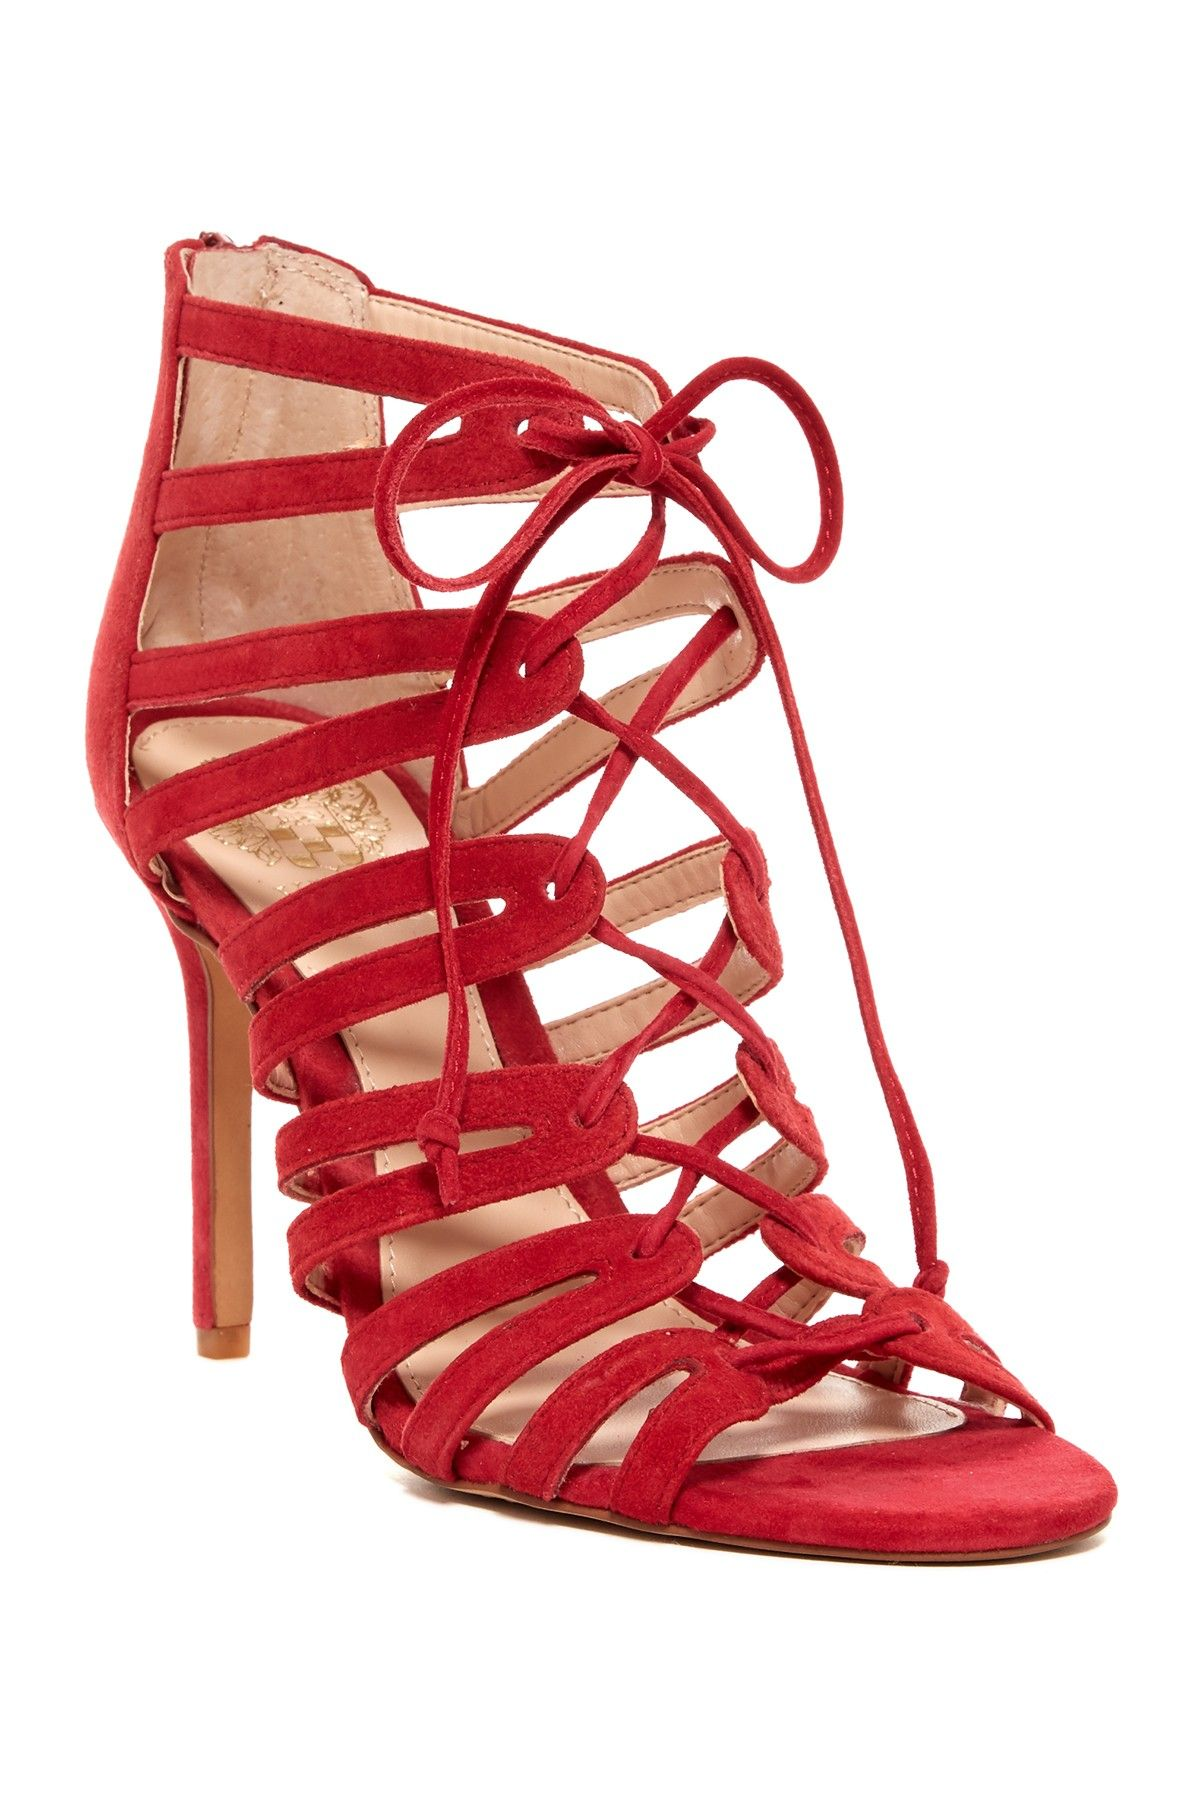 5a5072d1f58f Stand out in these sexy red Vince Camuto Zayna Strappy Heeled Sandals